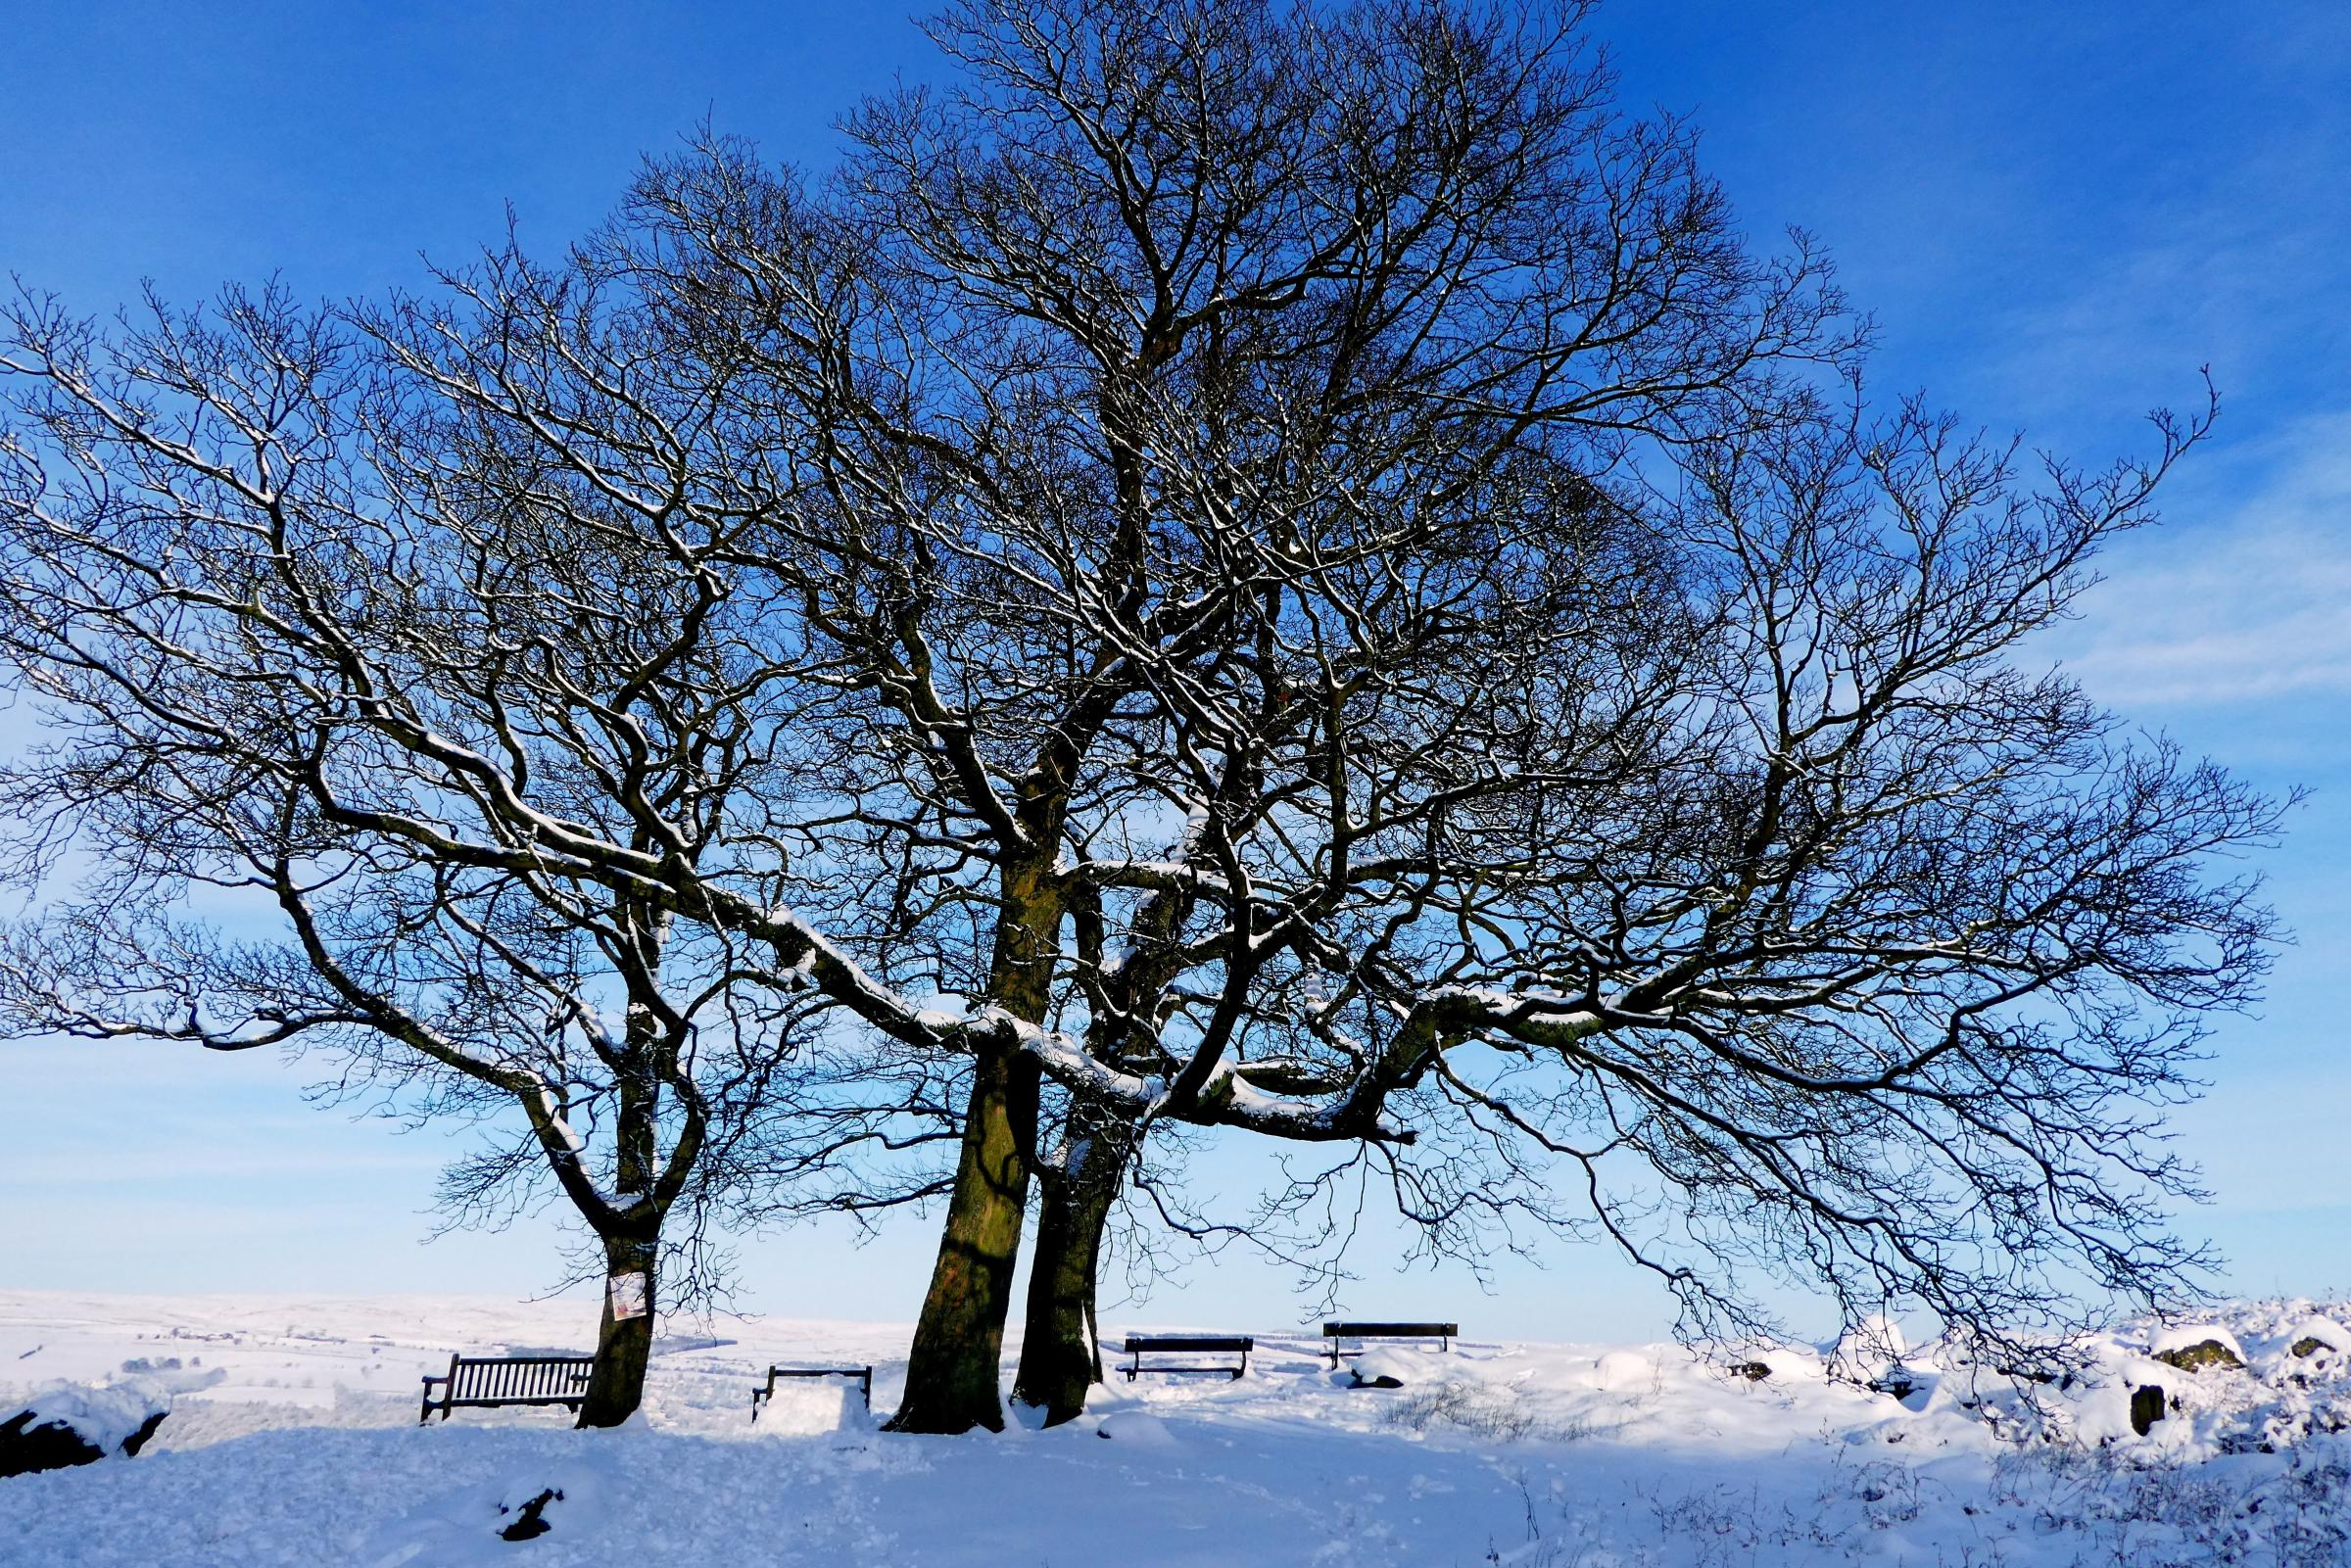 As the district braces for more snow readers share their winter photos